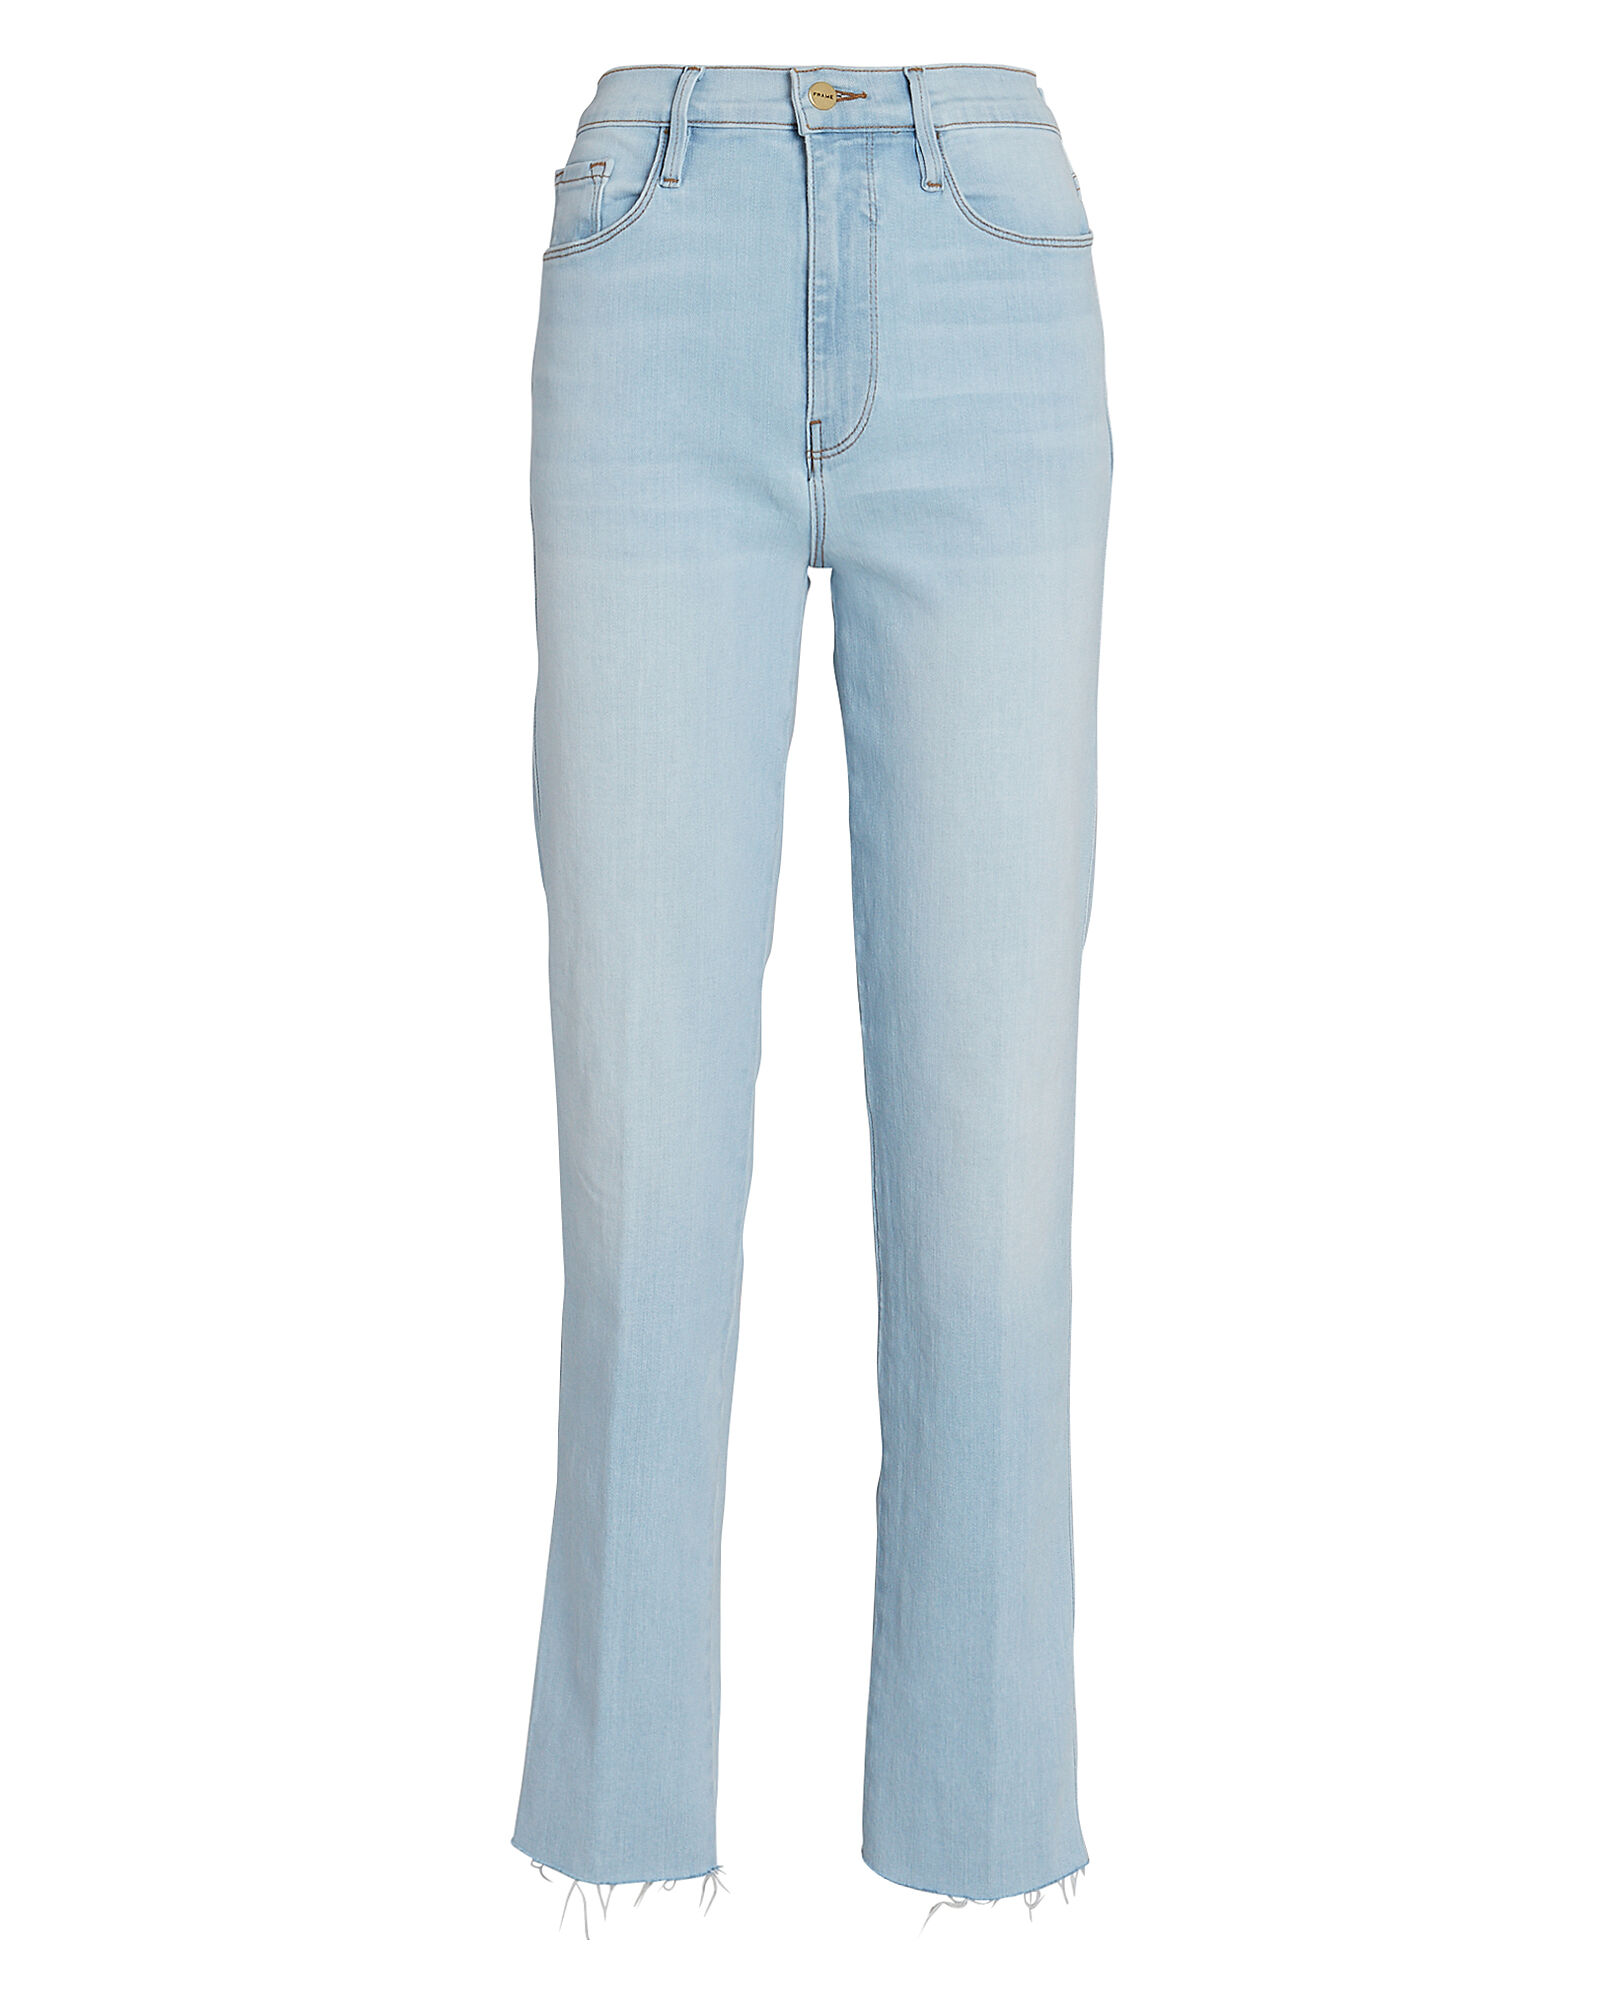 Le Sylvie Straight-Leg Jeans, LIGHT WASH DENIM, hi-res